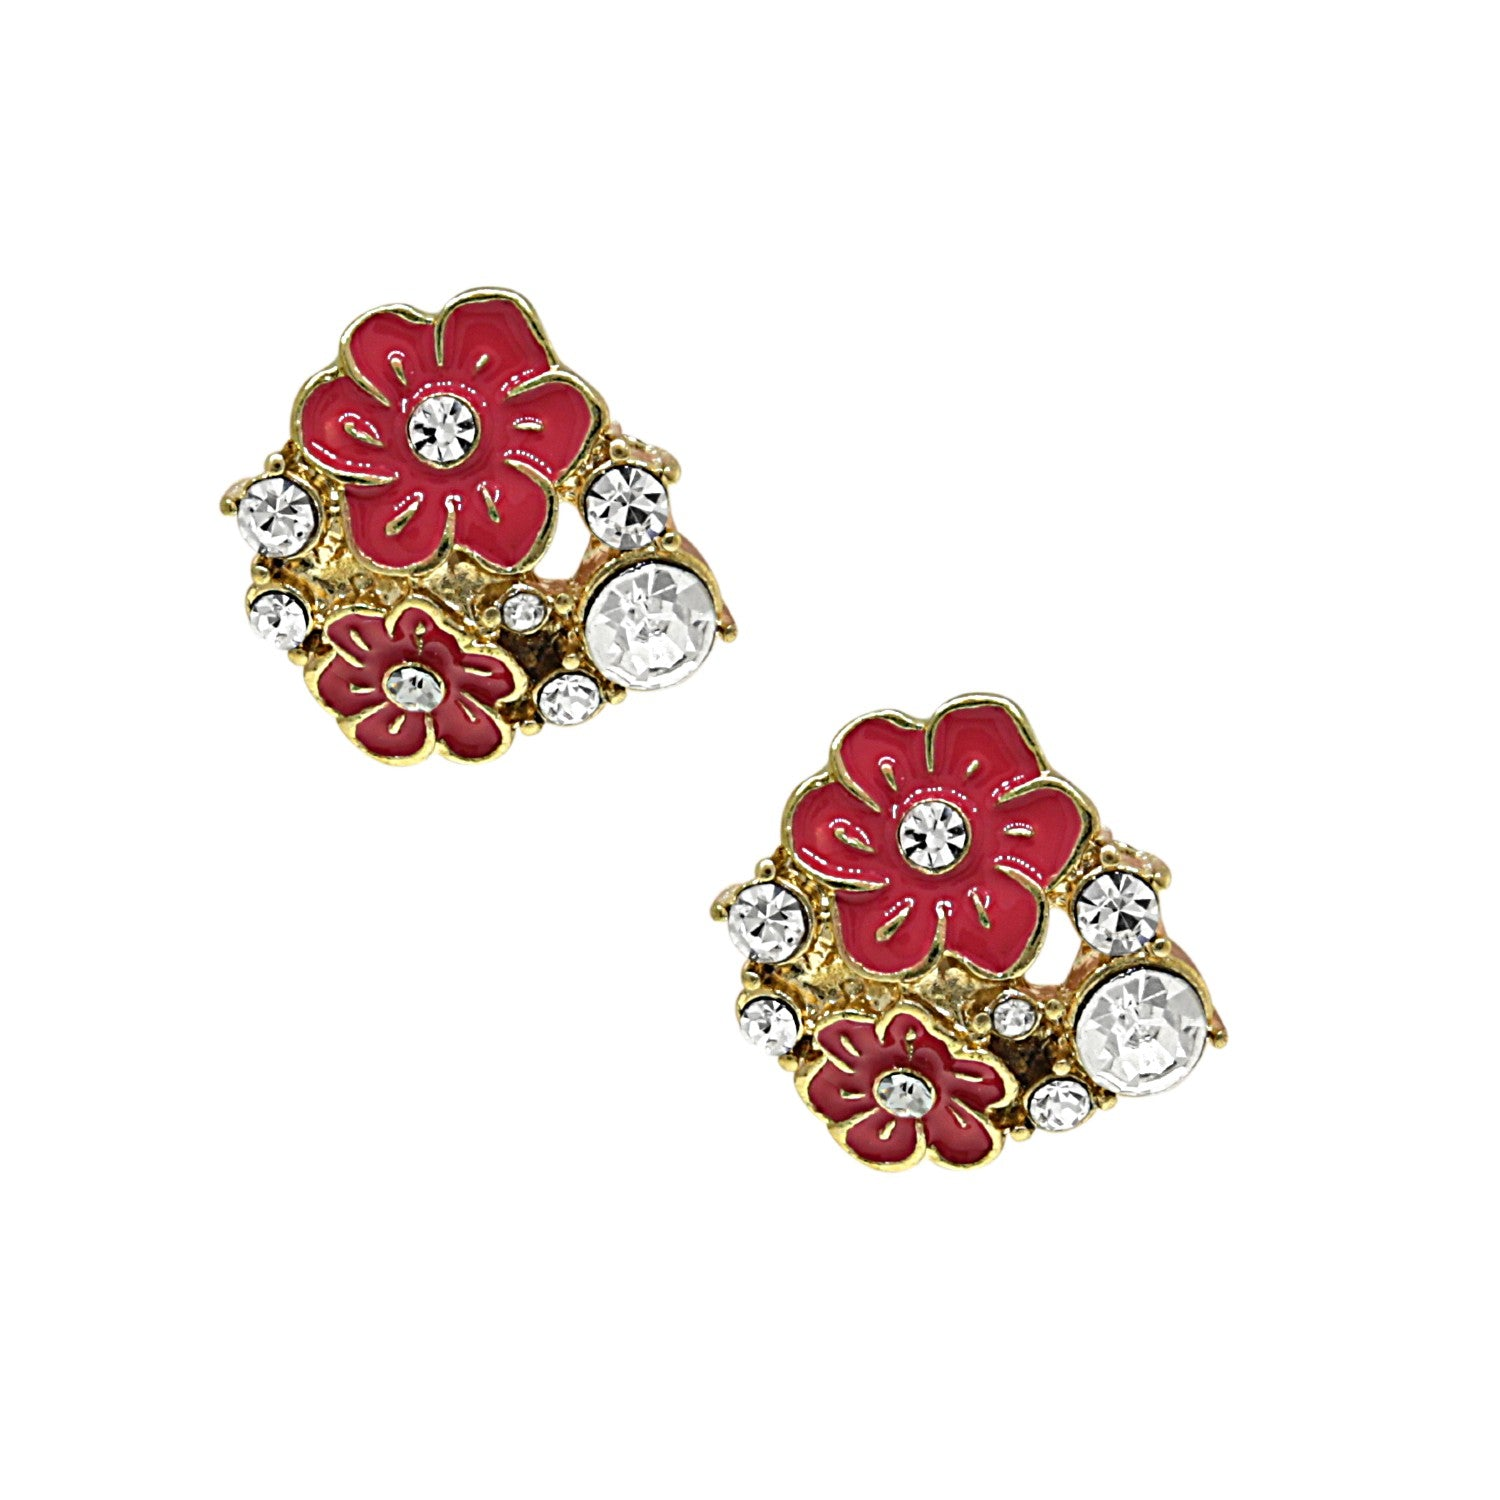 Gold-Tone Orange and Crystal Enamel Flower Button Earrings